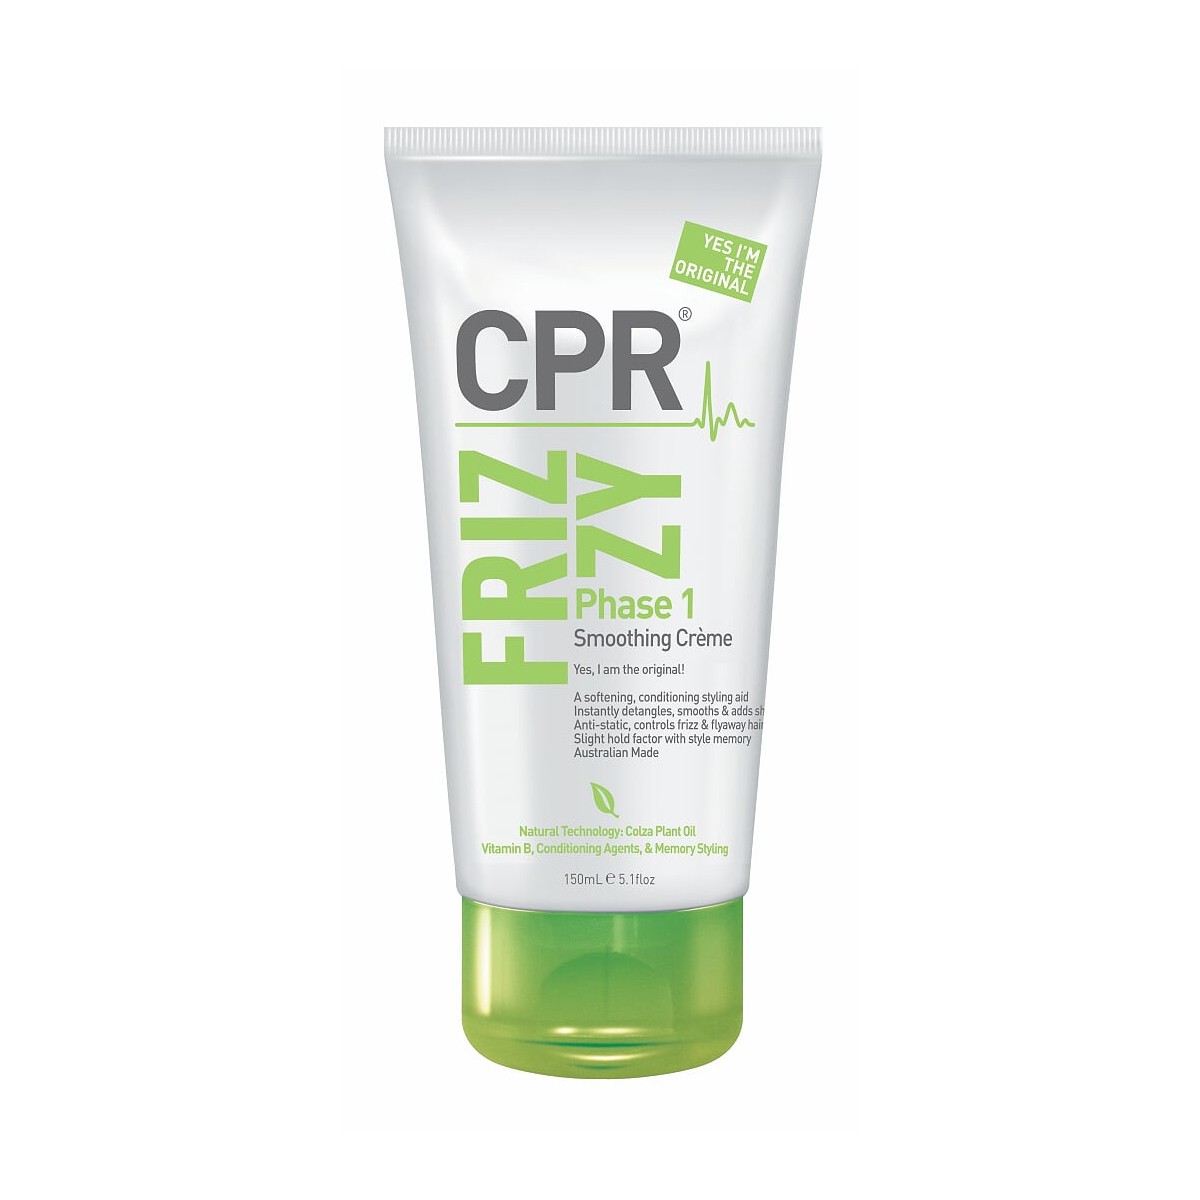 Vitafive CPR Frizz Control Phase 1 Smoothing Creme 150ml